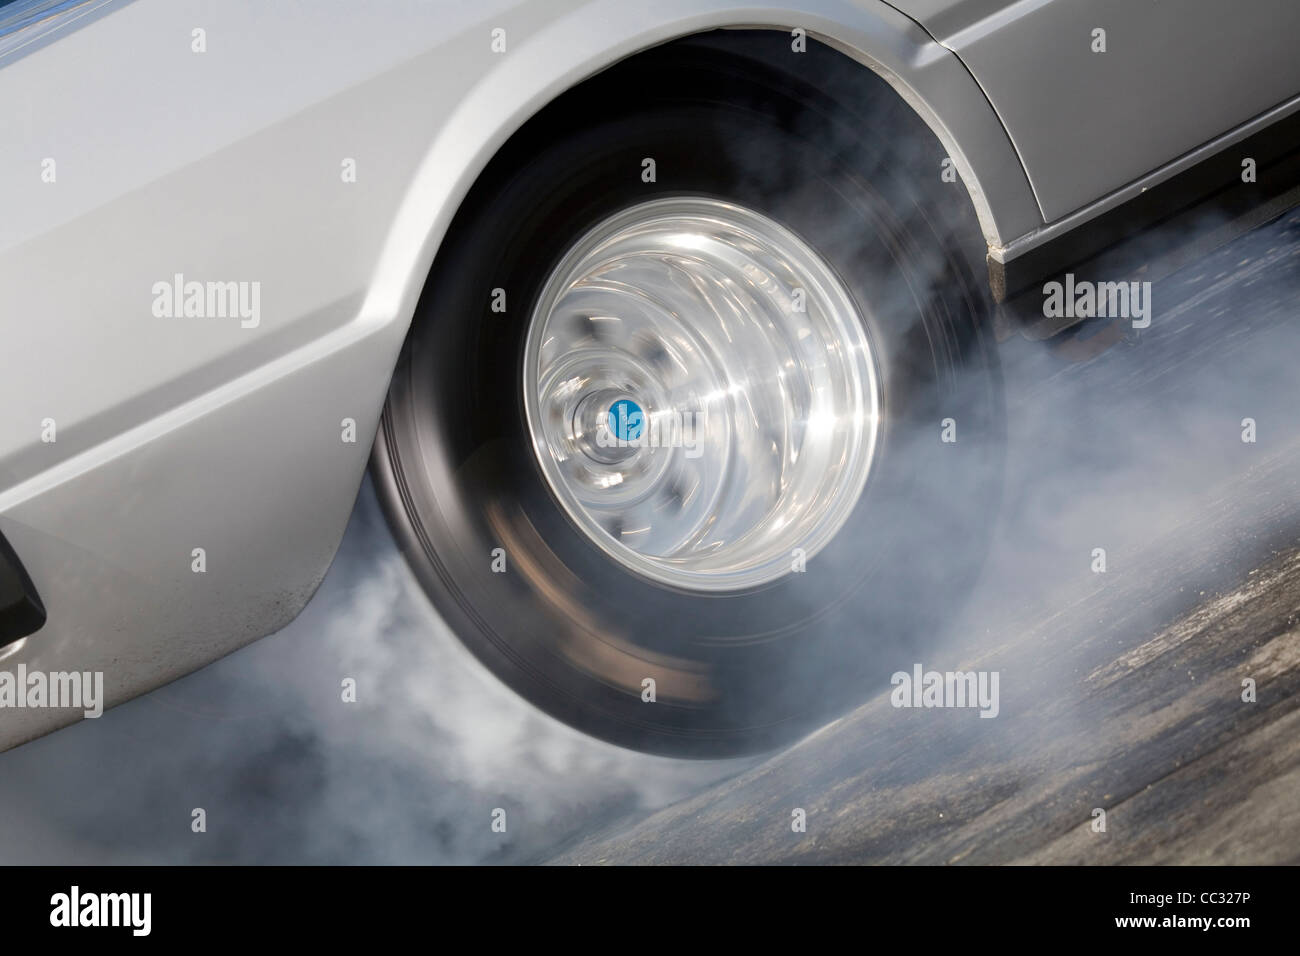 spinning wheel of a drag racing car skidding and producing burning rubber tire smoke. Stock Photo